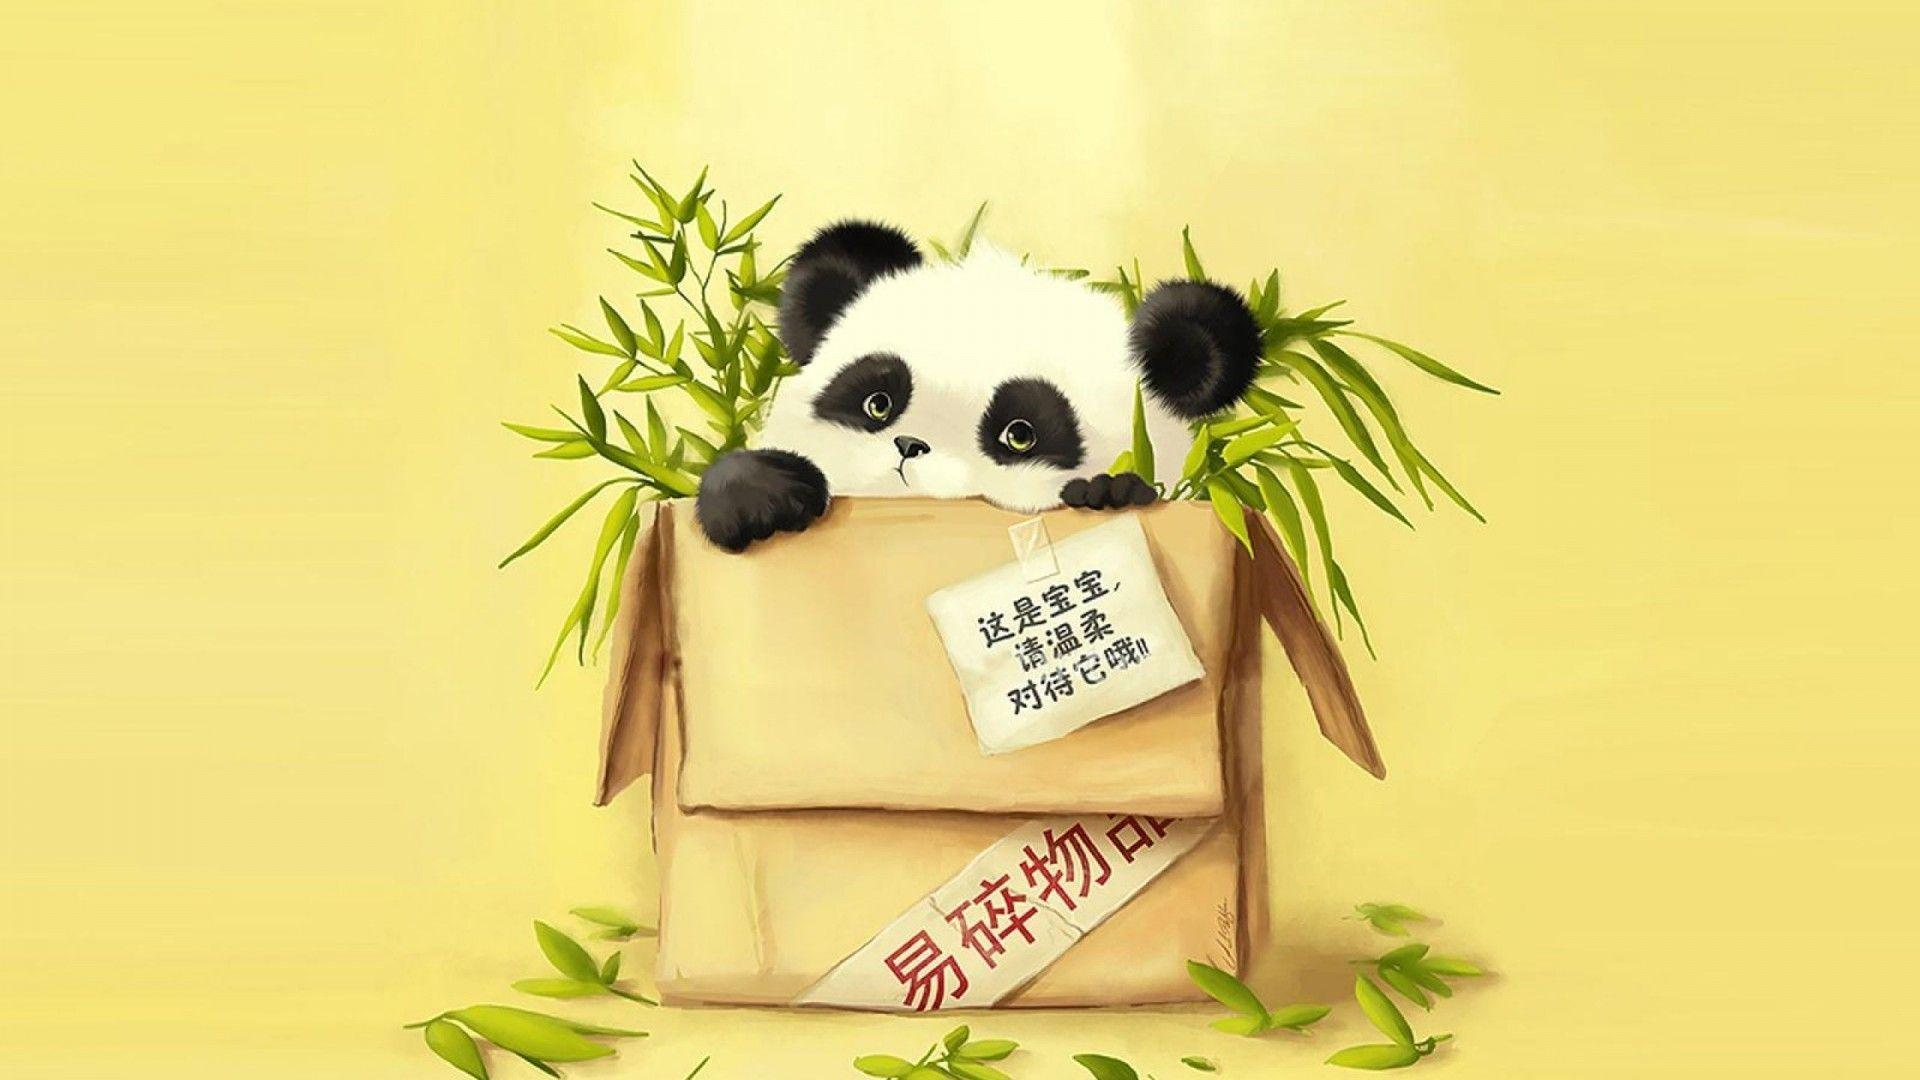 Download Wallpaper Macbook Panda - O7o19cL  Trends_597948.jpg